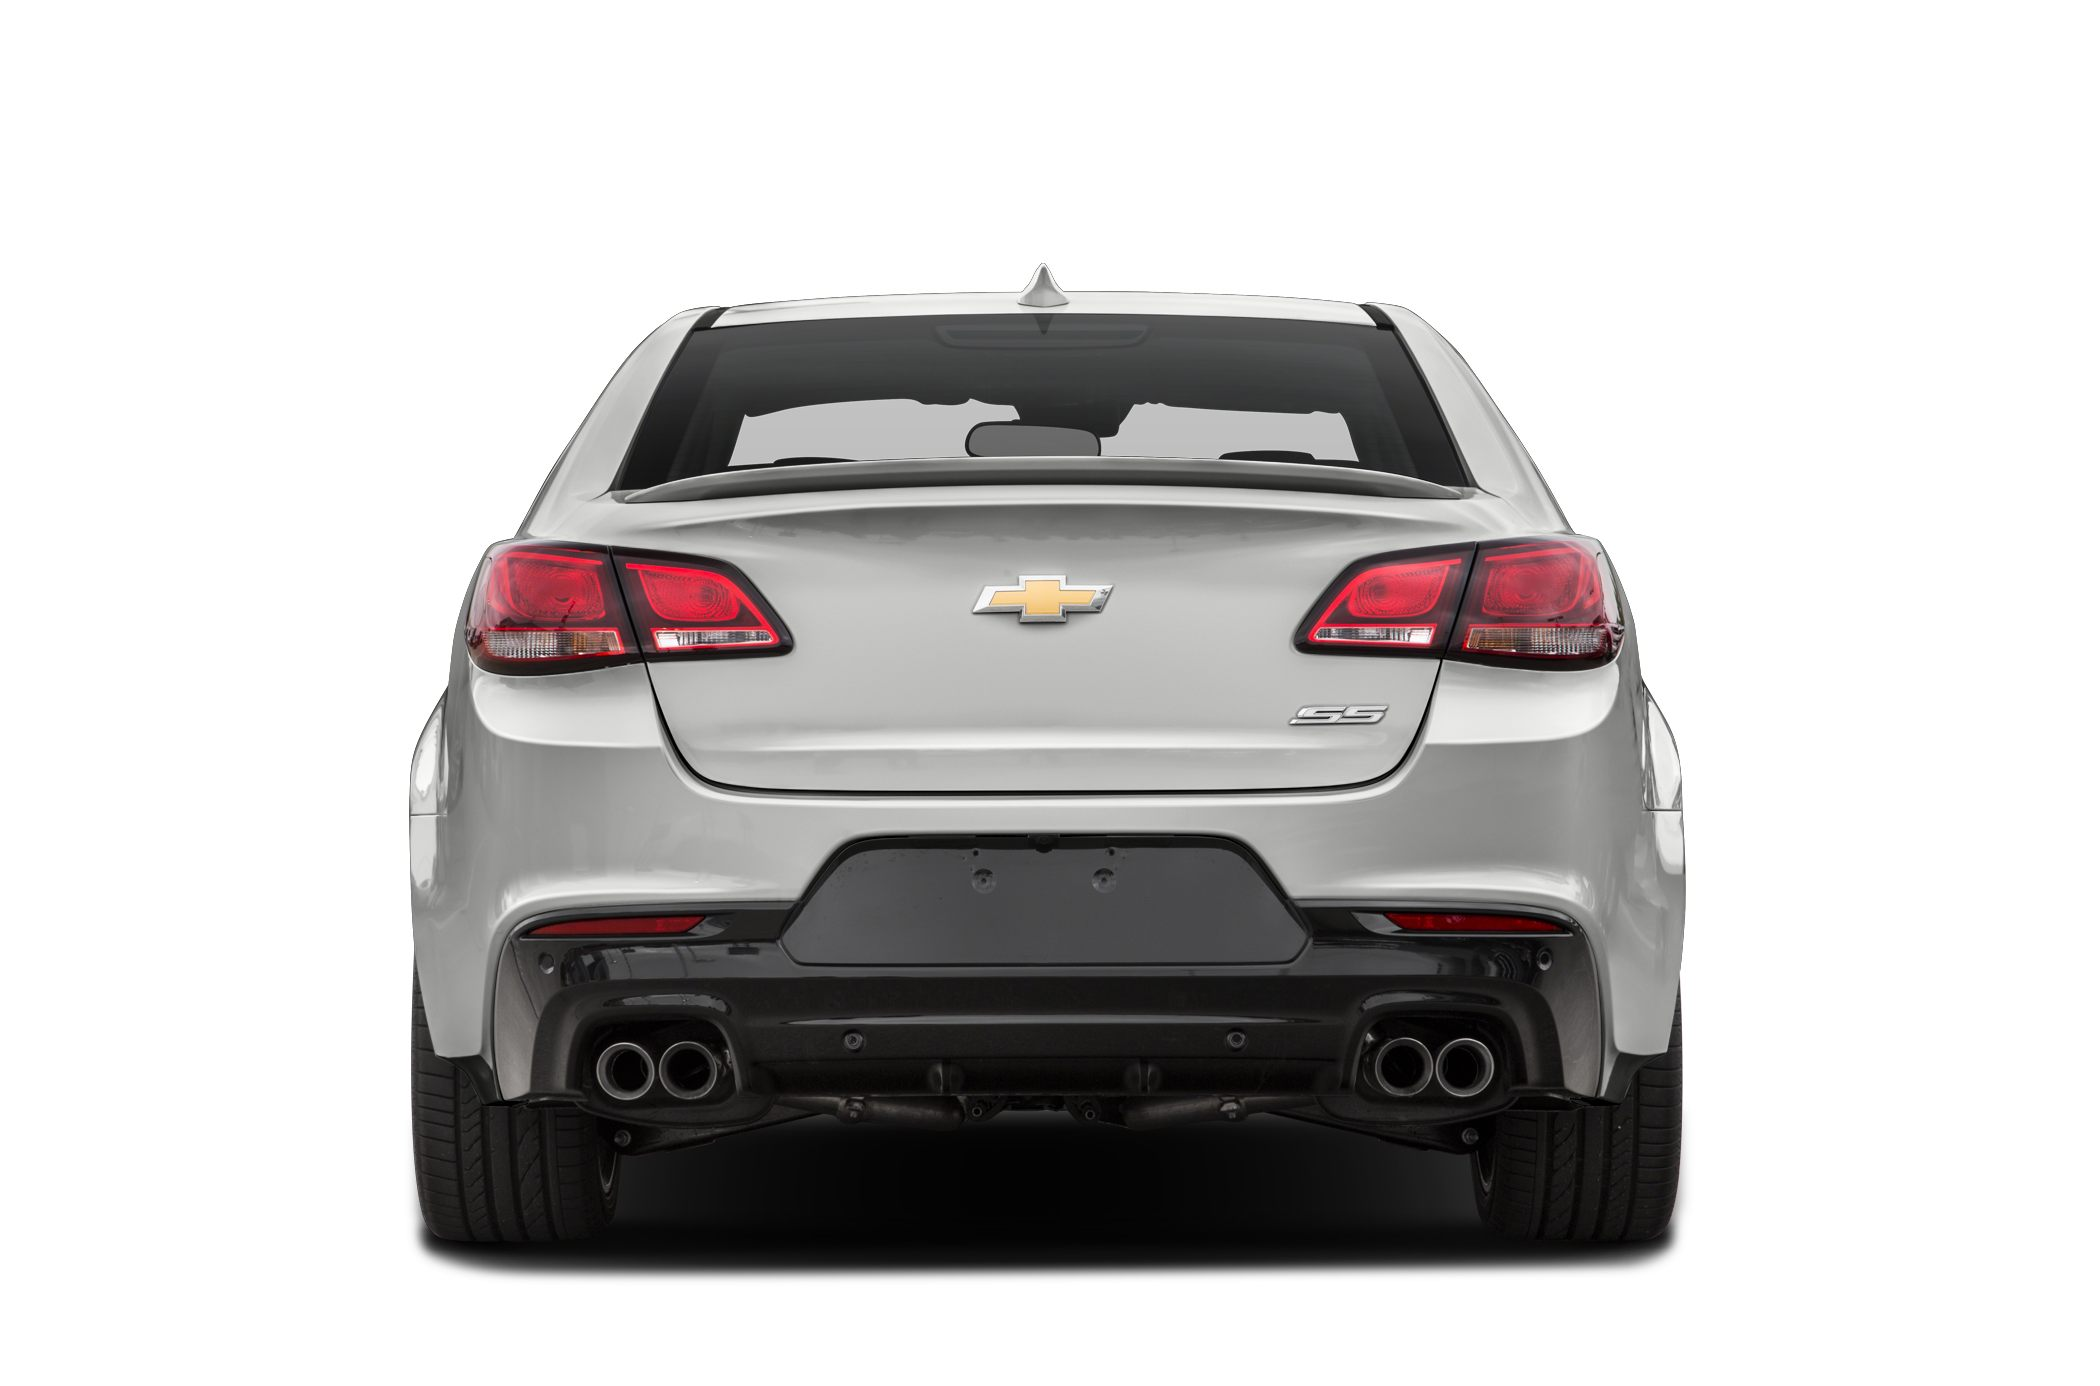 2016 Chevrolet SS Deals Prices Incentives & Leases